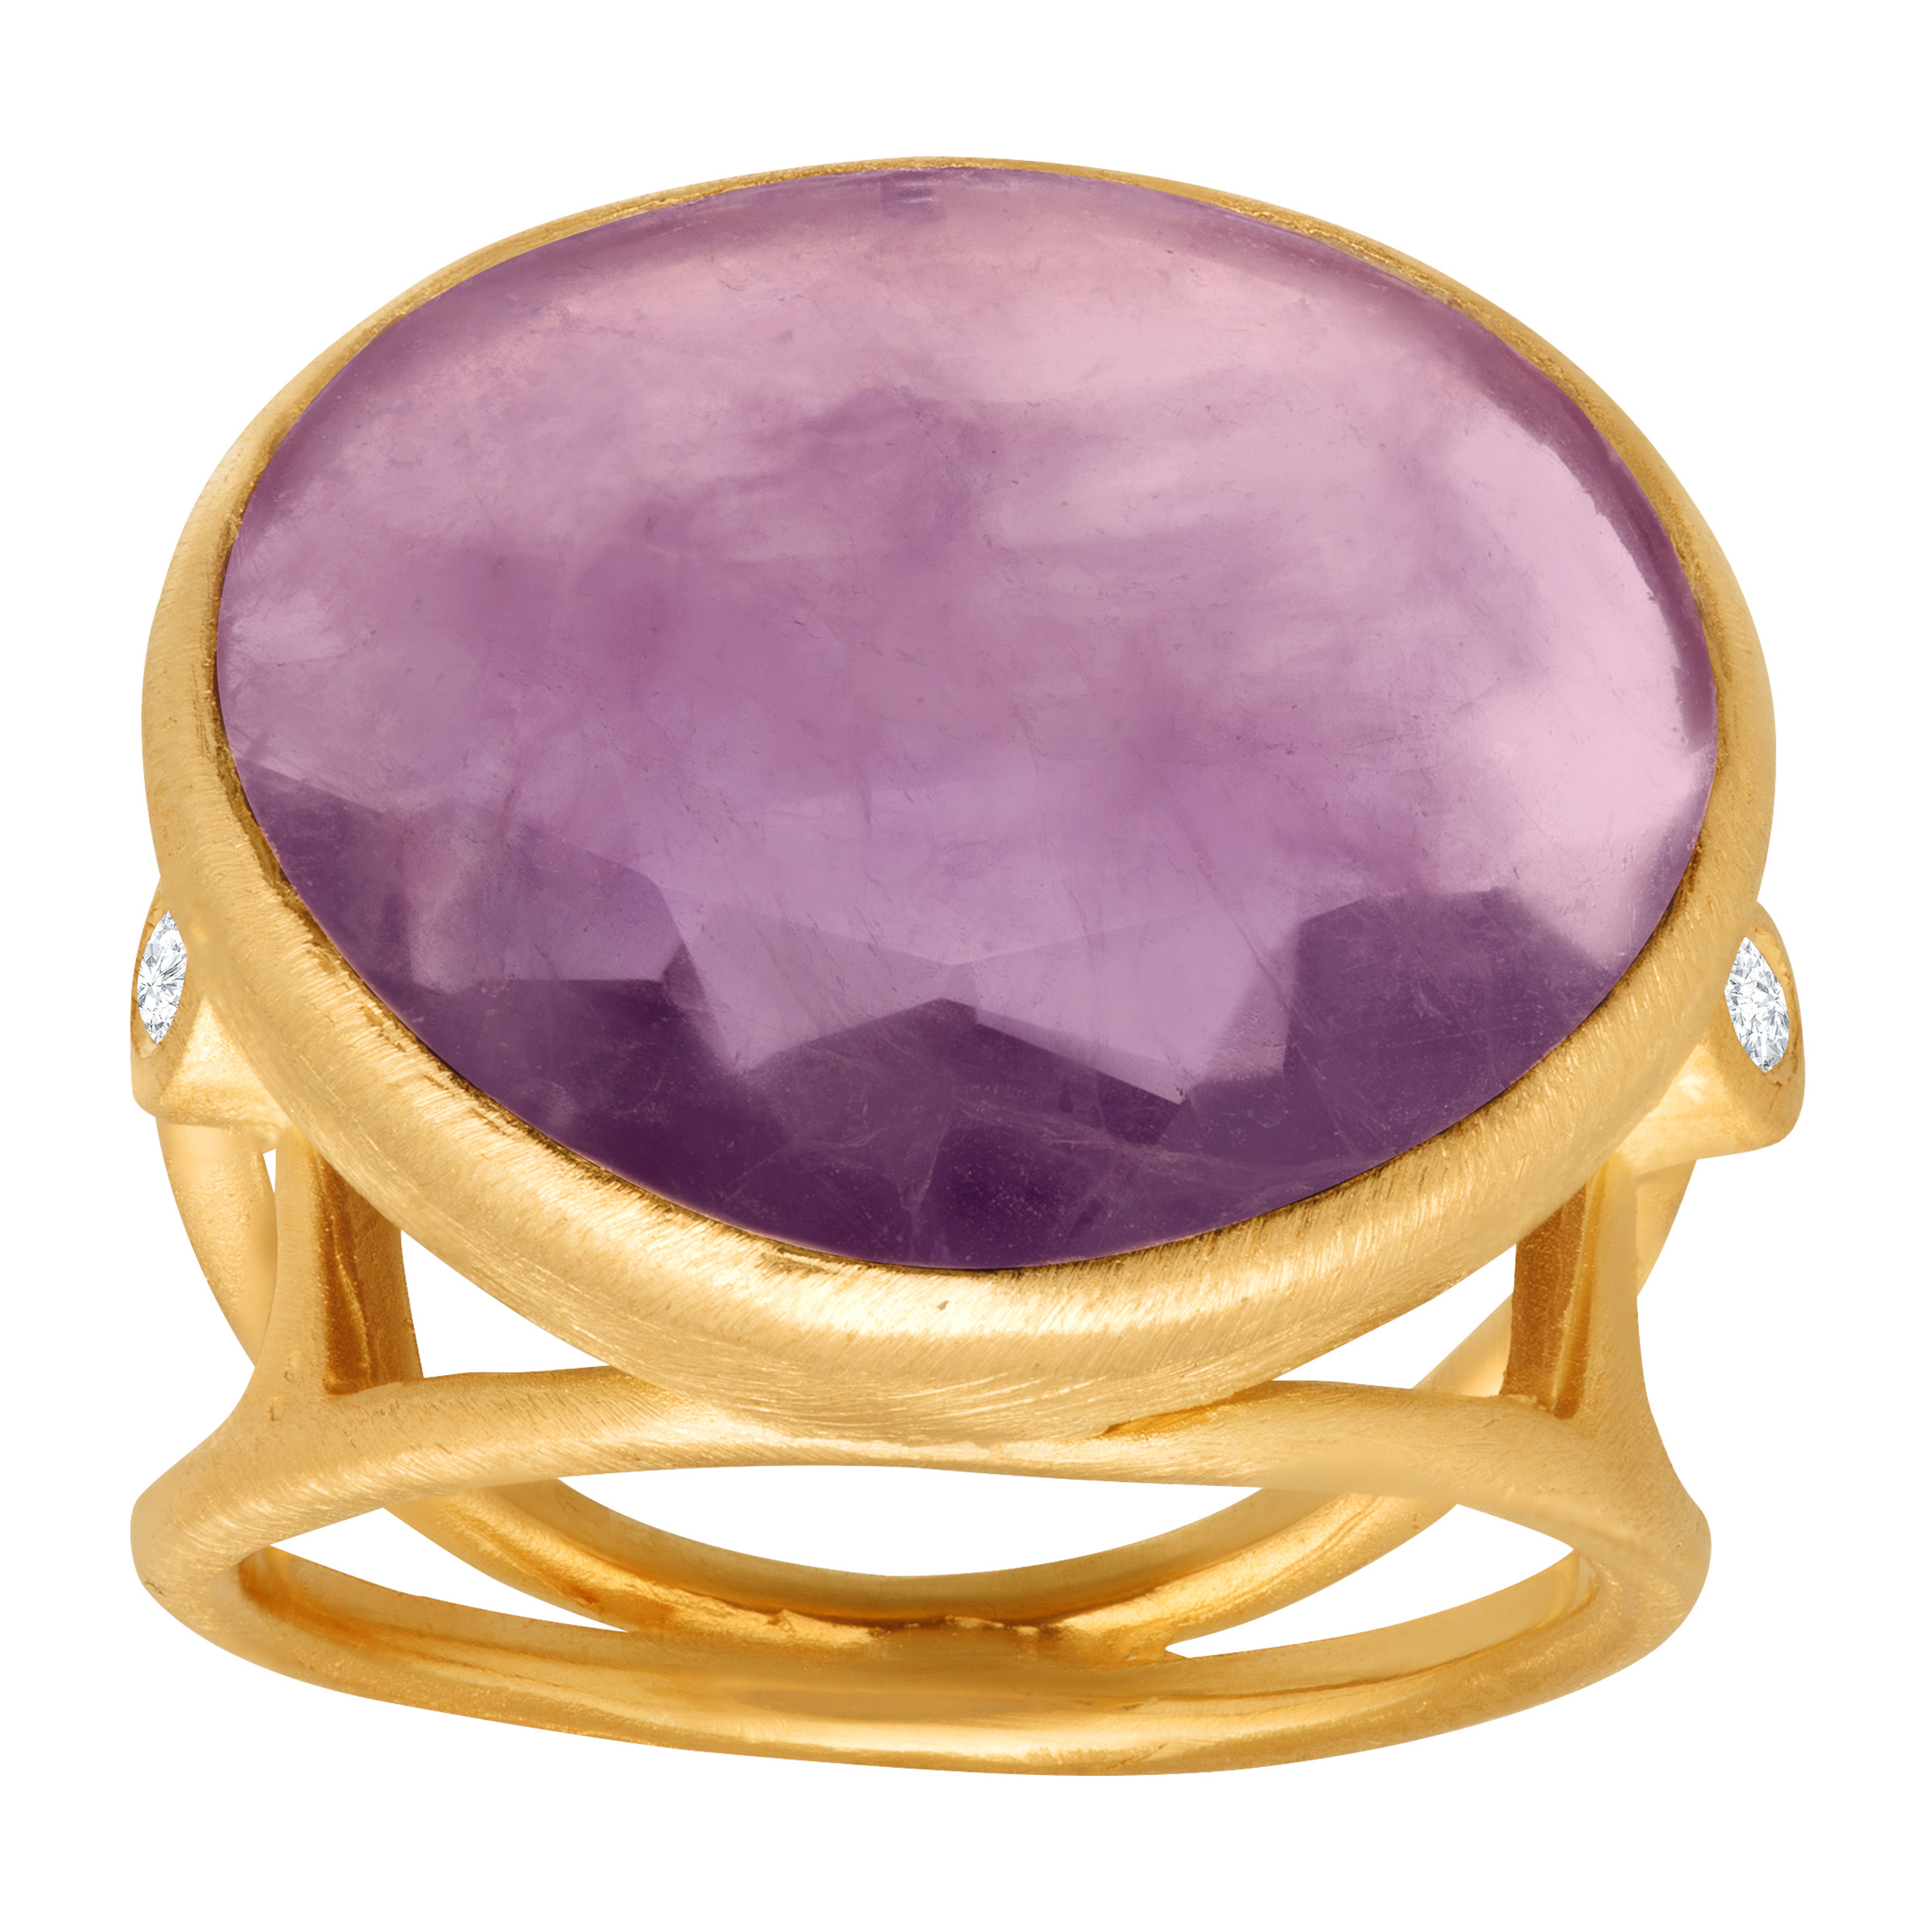 Piara 8 7 8 ct Natural Amethyst Ring with Diamond Accents in 18kt Gold-Plated Sterling Silver by Richline Group